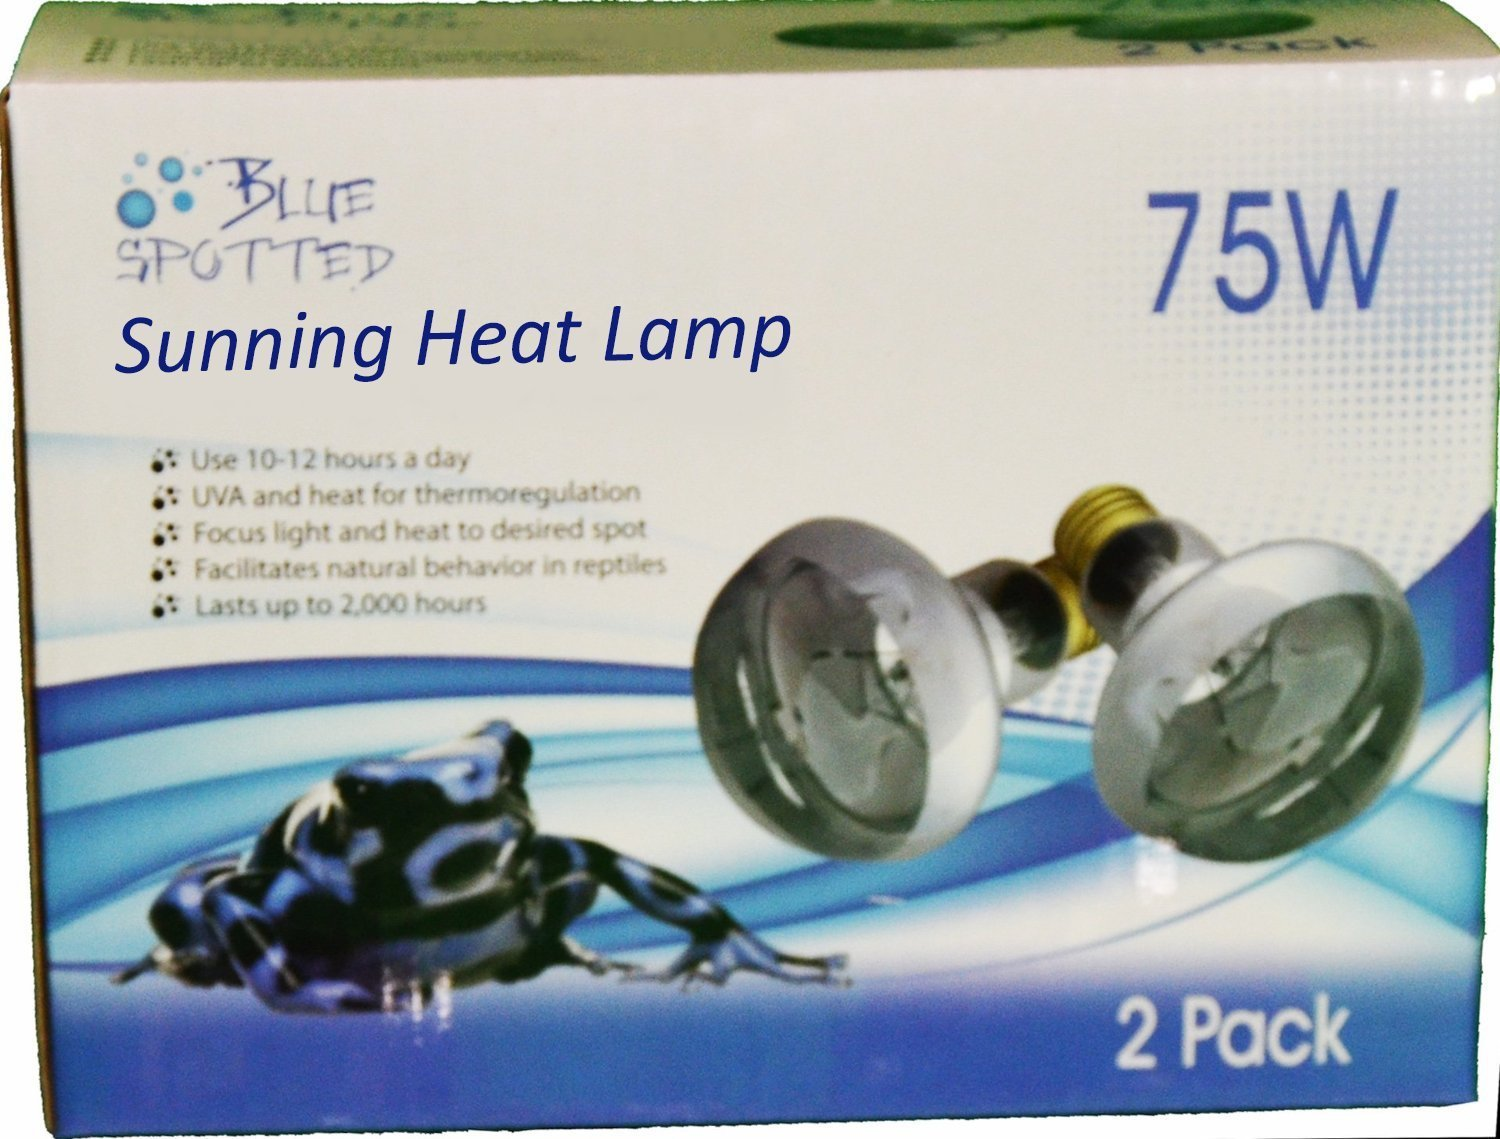 4 Sunning Heat Lamps, 75 Watt (2 Value Packs) For Use With Terrariums And Provided A Basking Lamp Reptiles, Amphibians, Small Animals, Birds, And Farm Animals